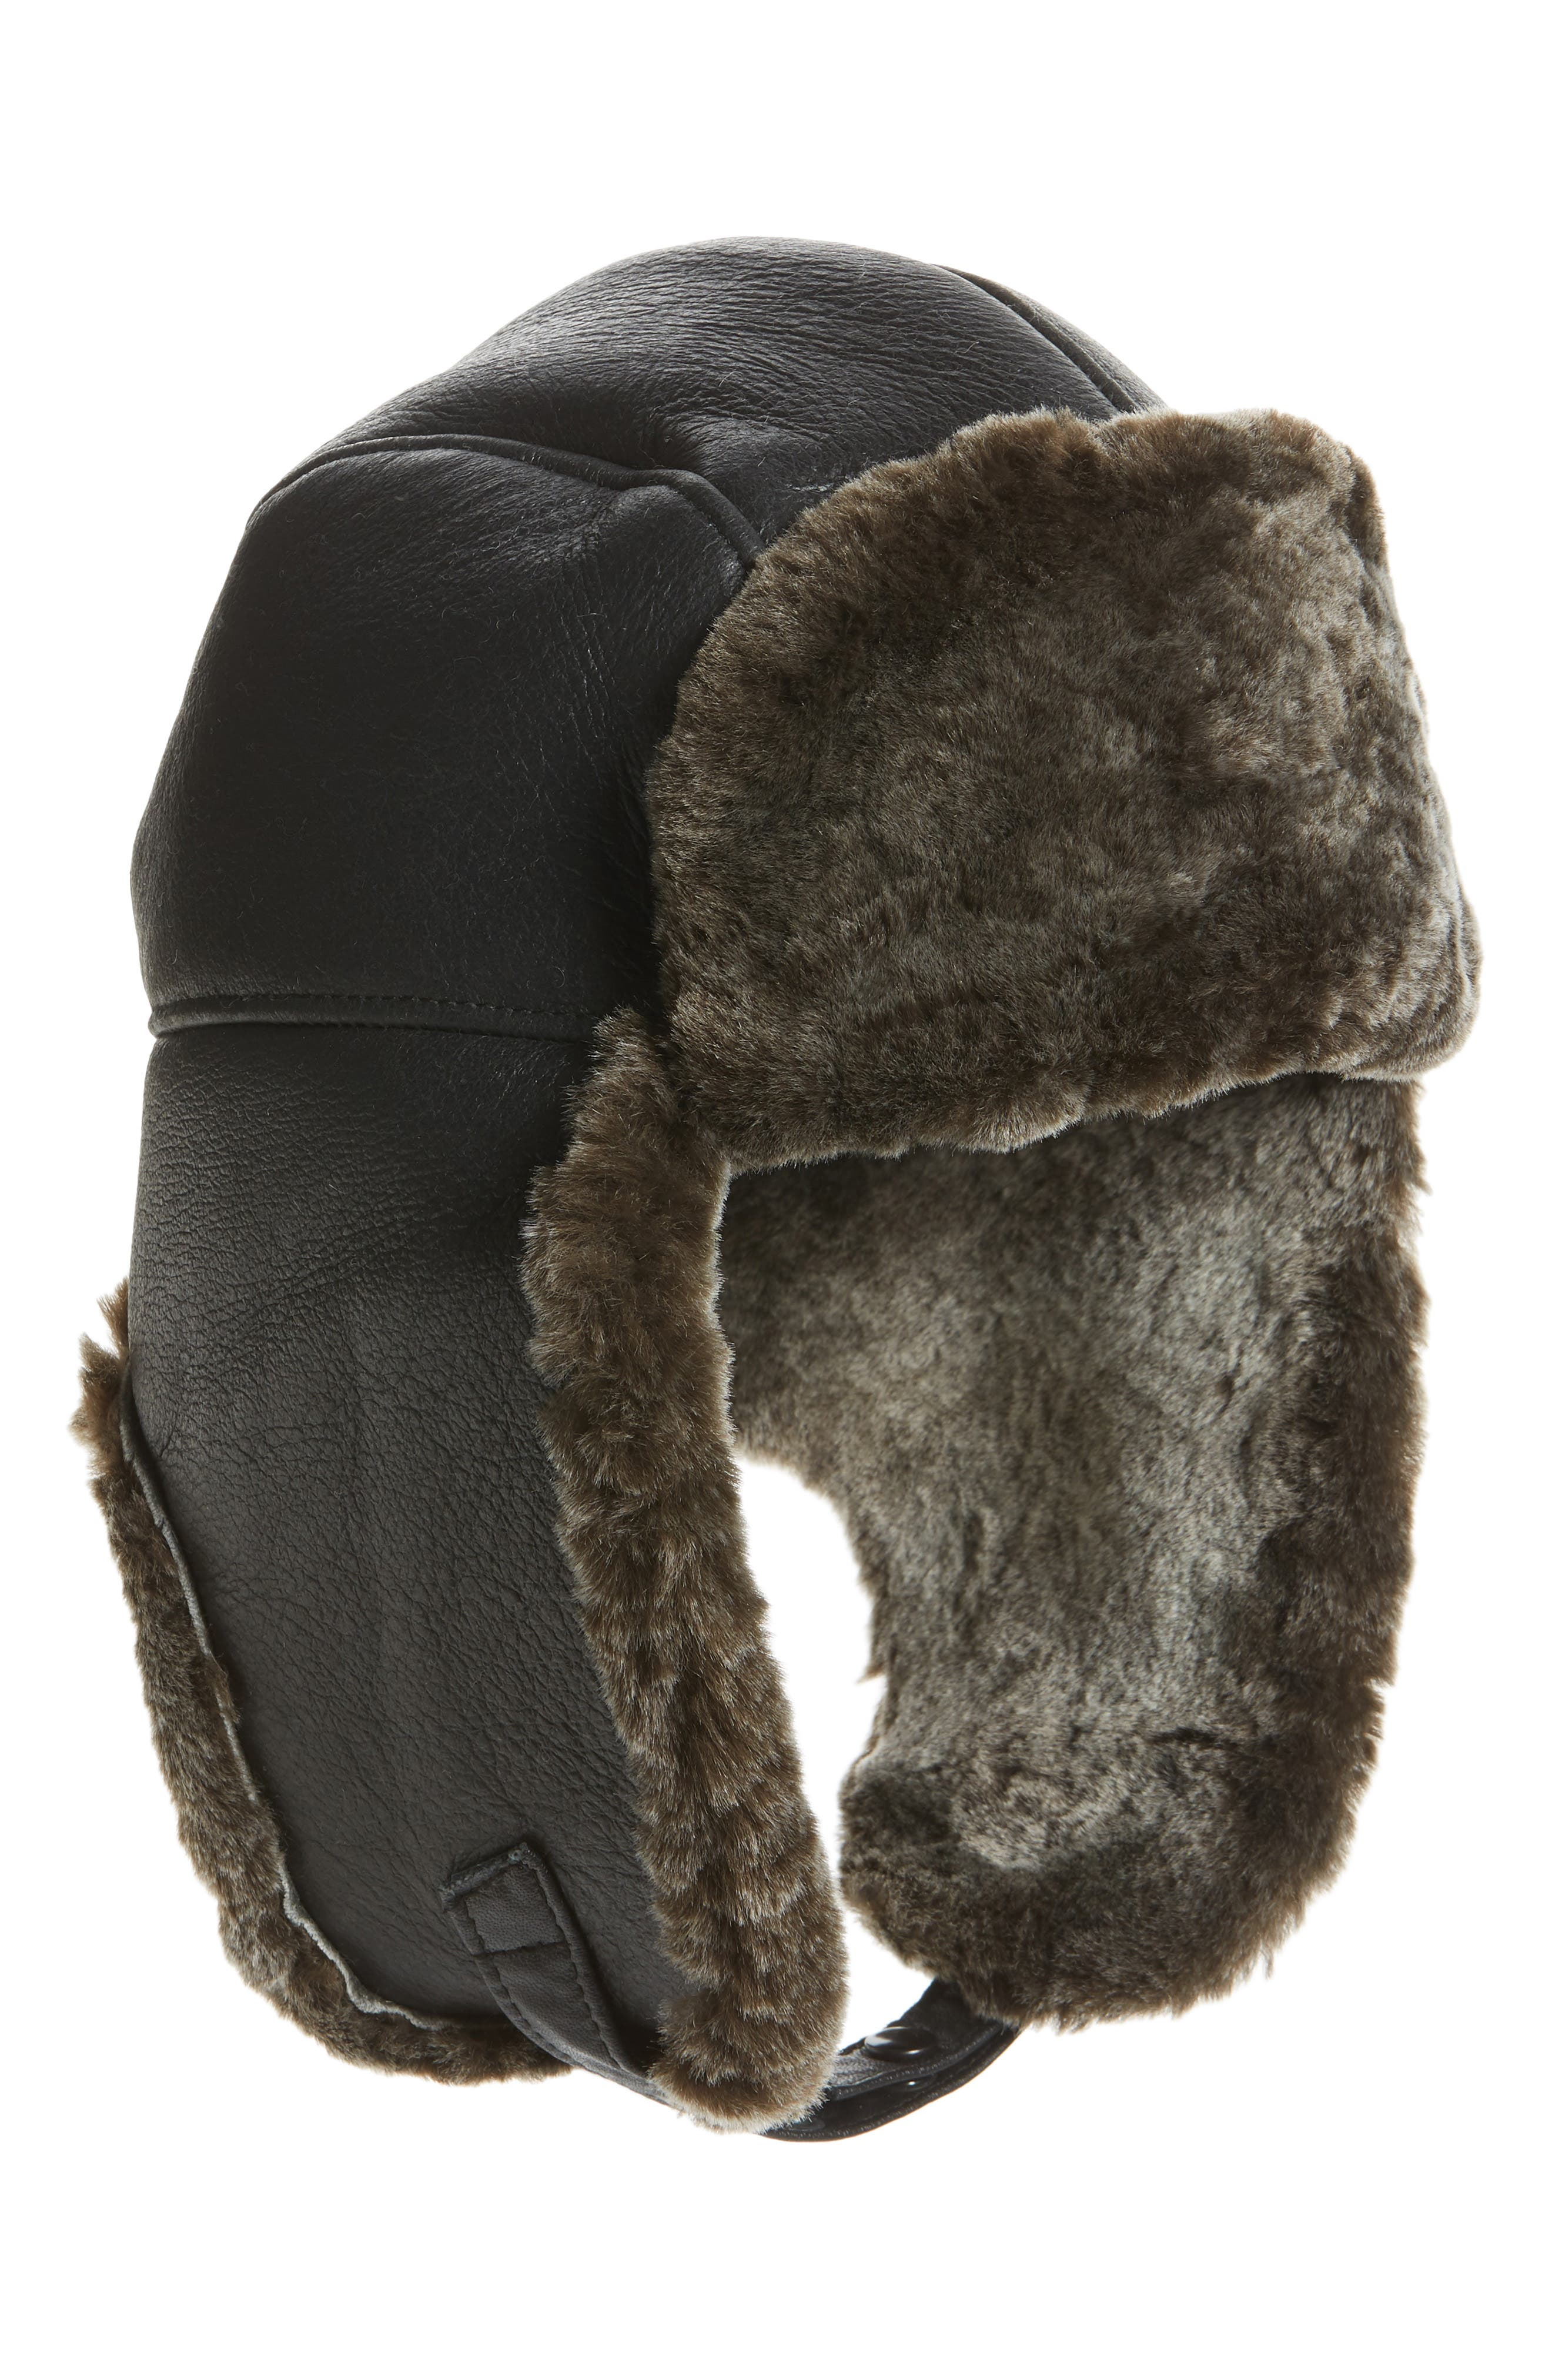 Crown Cap Accessories GENUINE SHEARLING LEATHER TRAPPER HAT - GREY